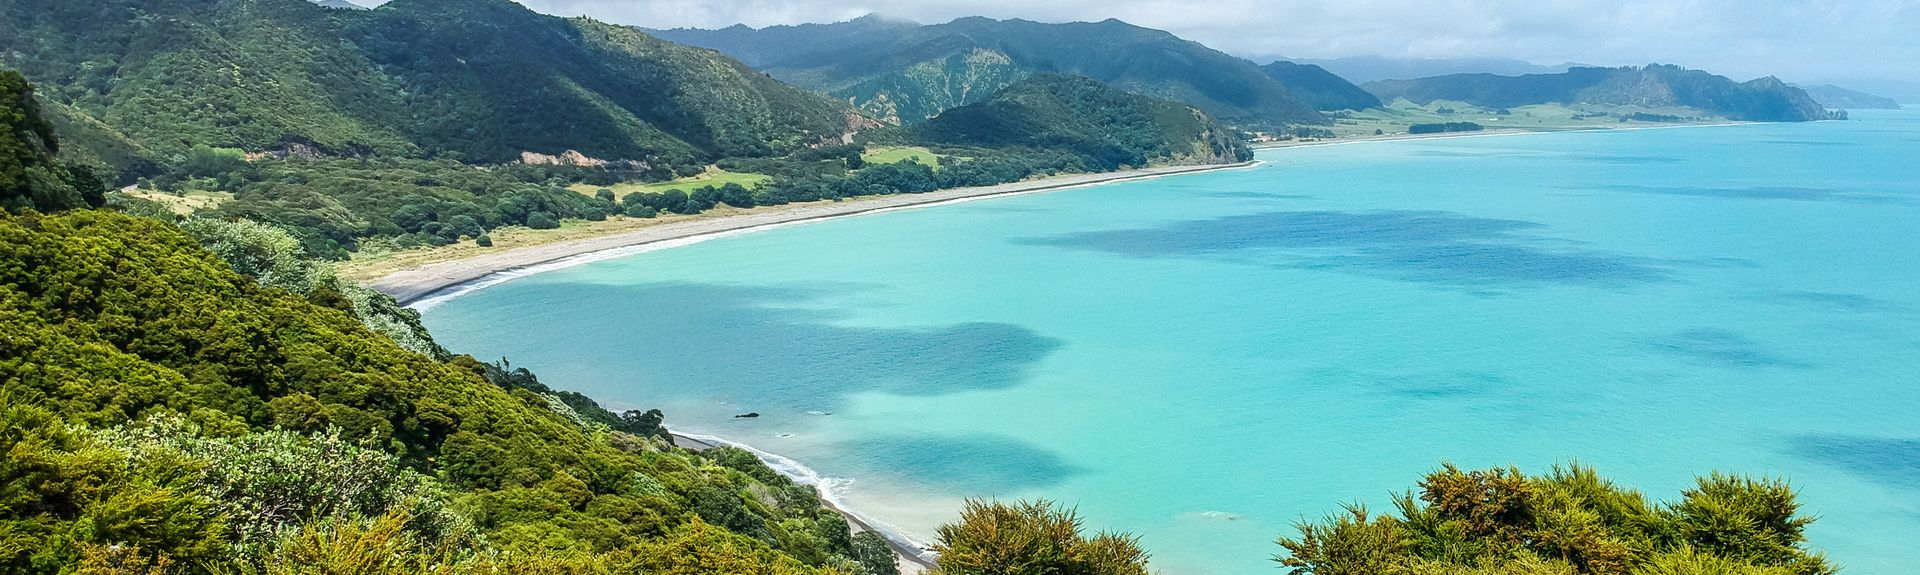 Opotiki, Bay of Plenty, New Zealand